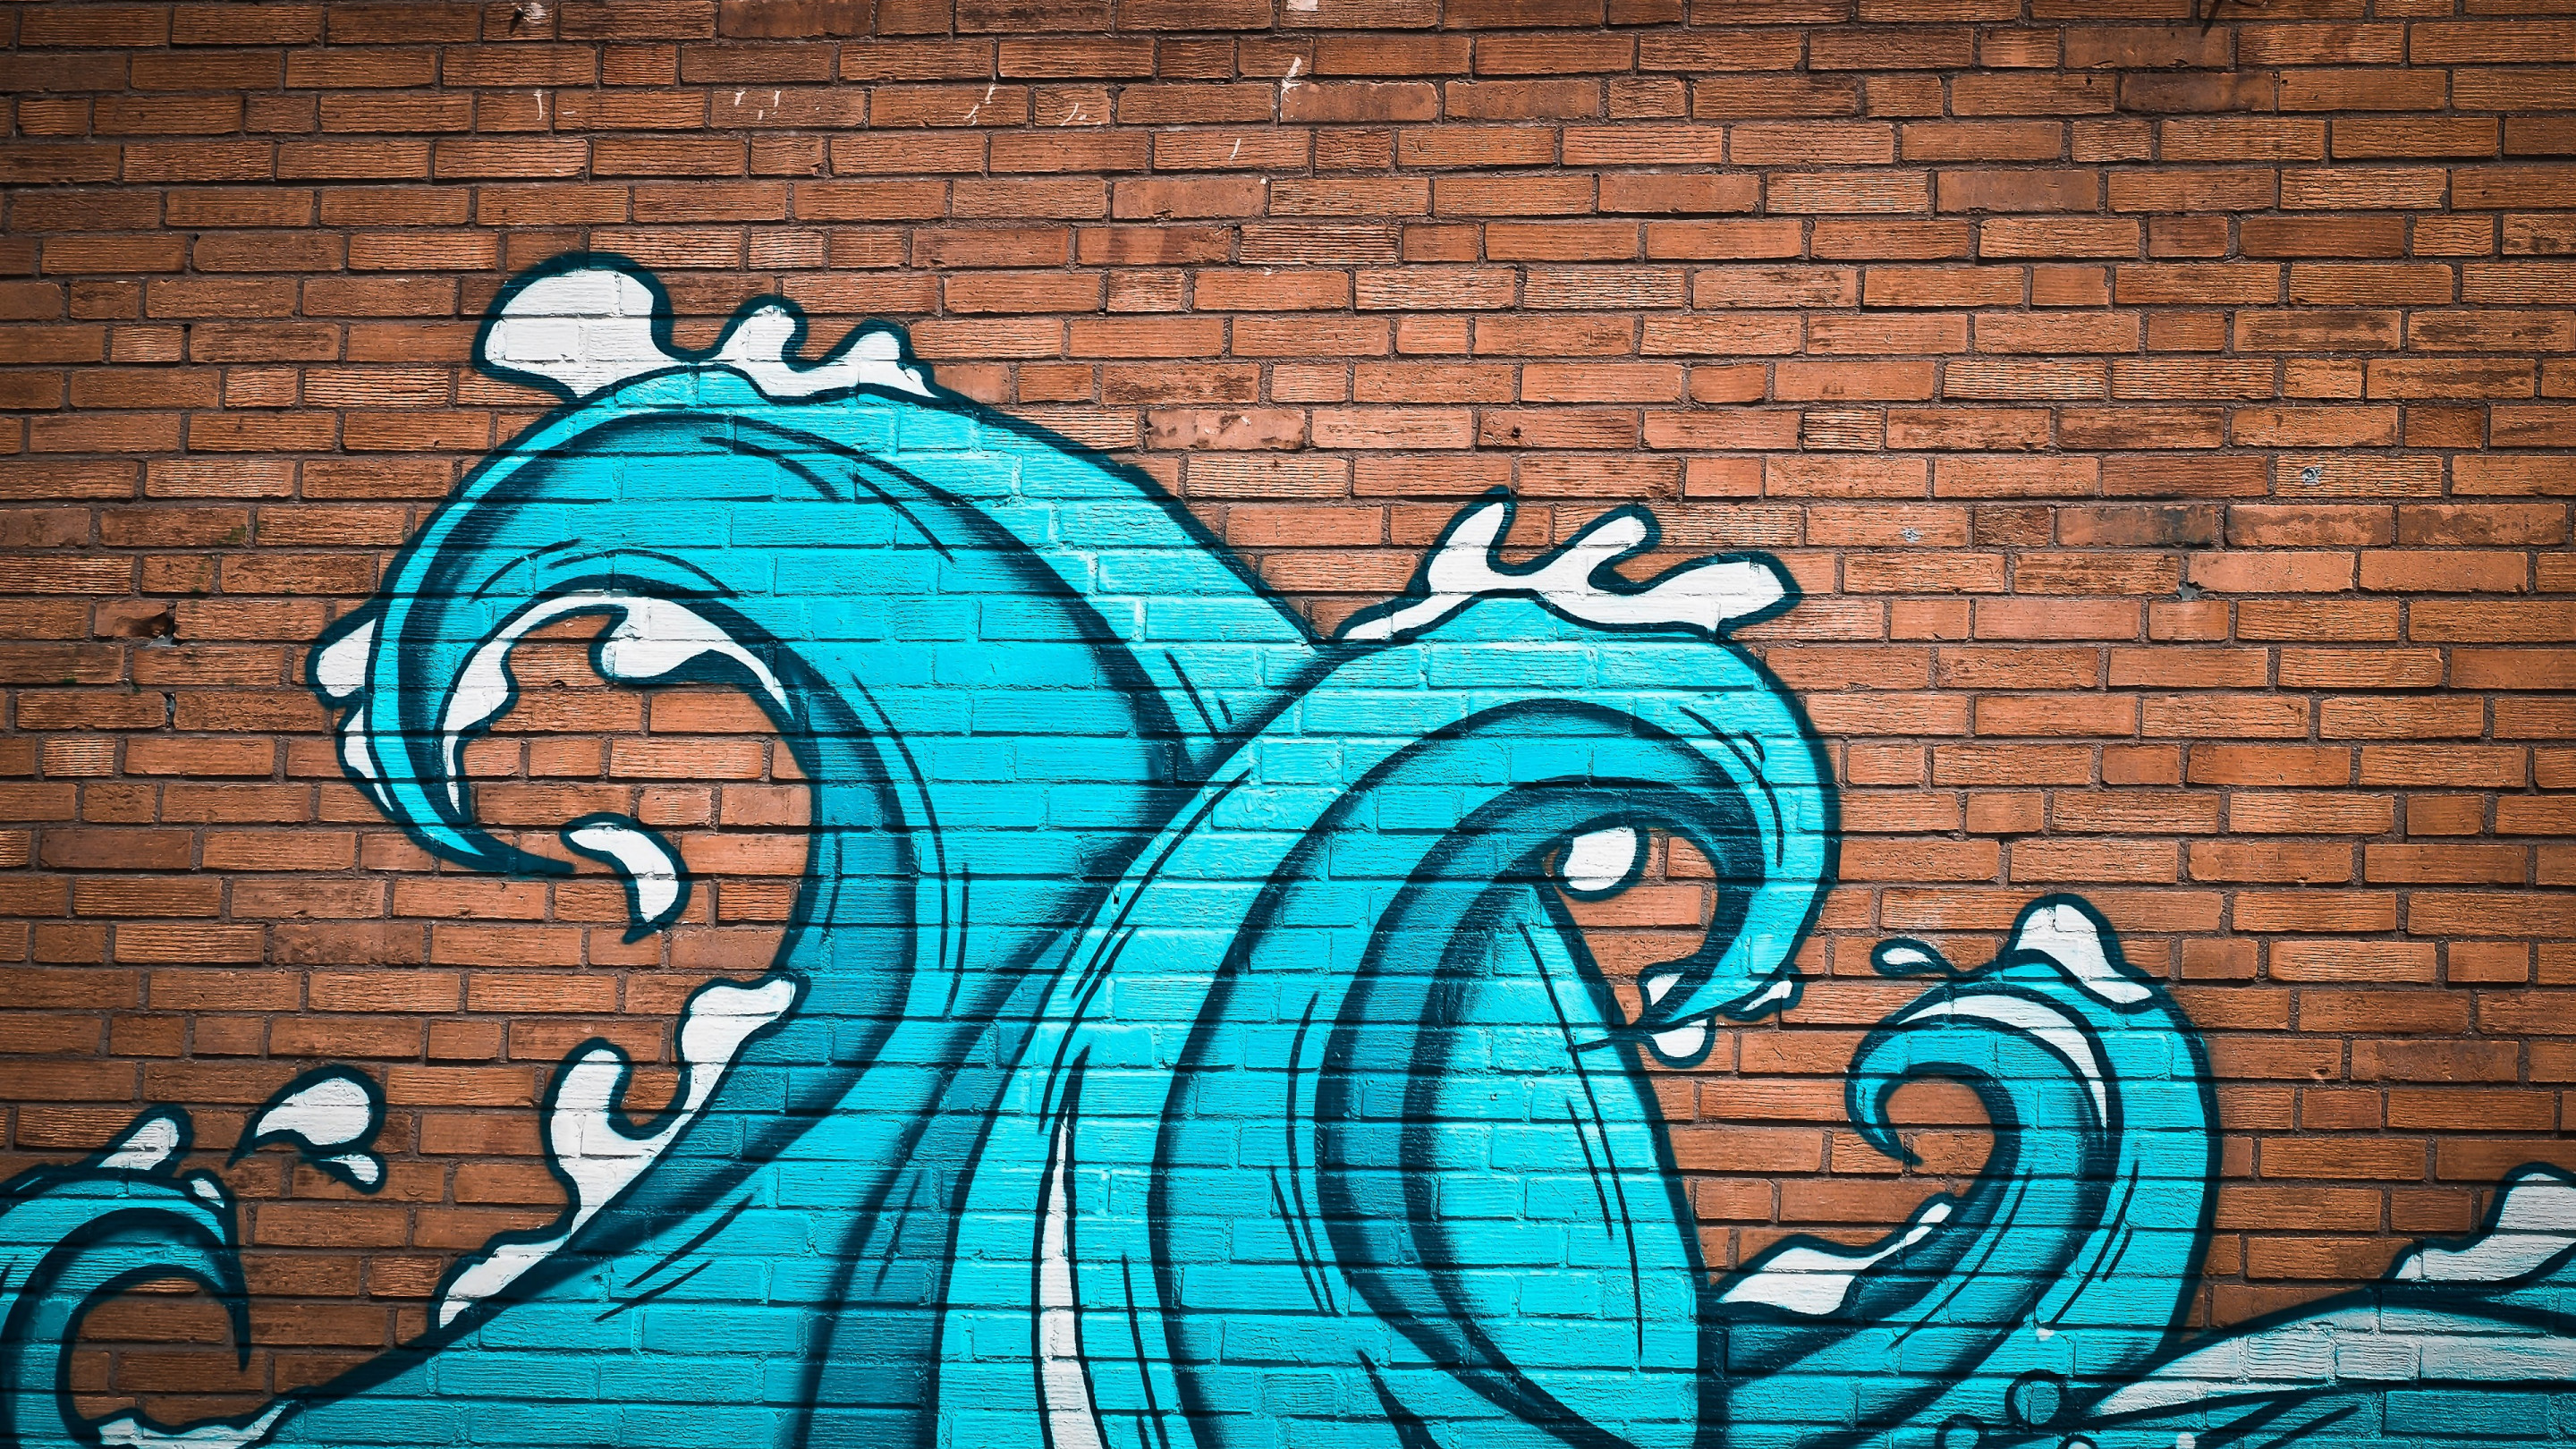 Graffiti waves on brick wall wallpaper 2880x1620